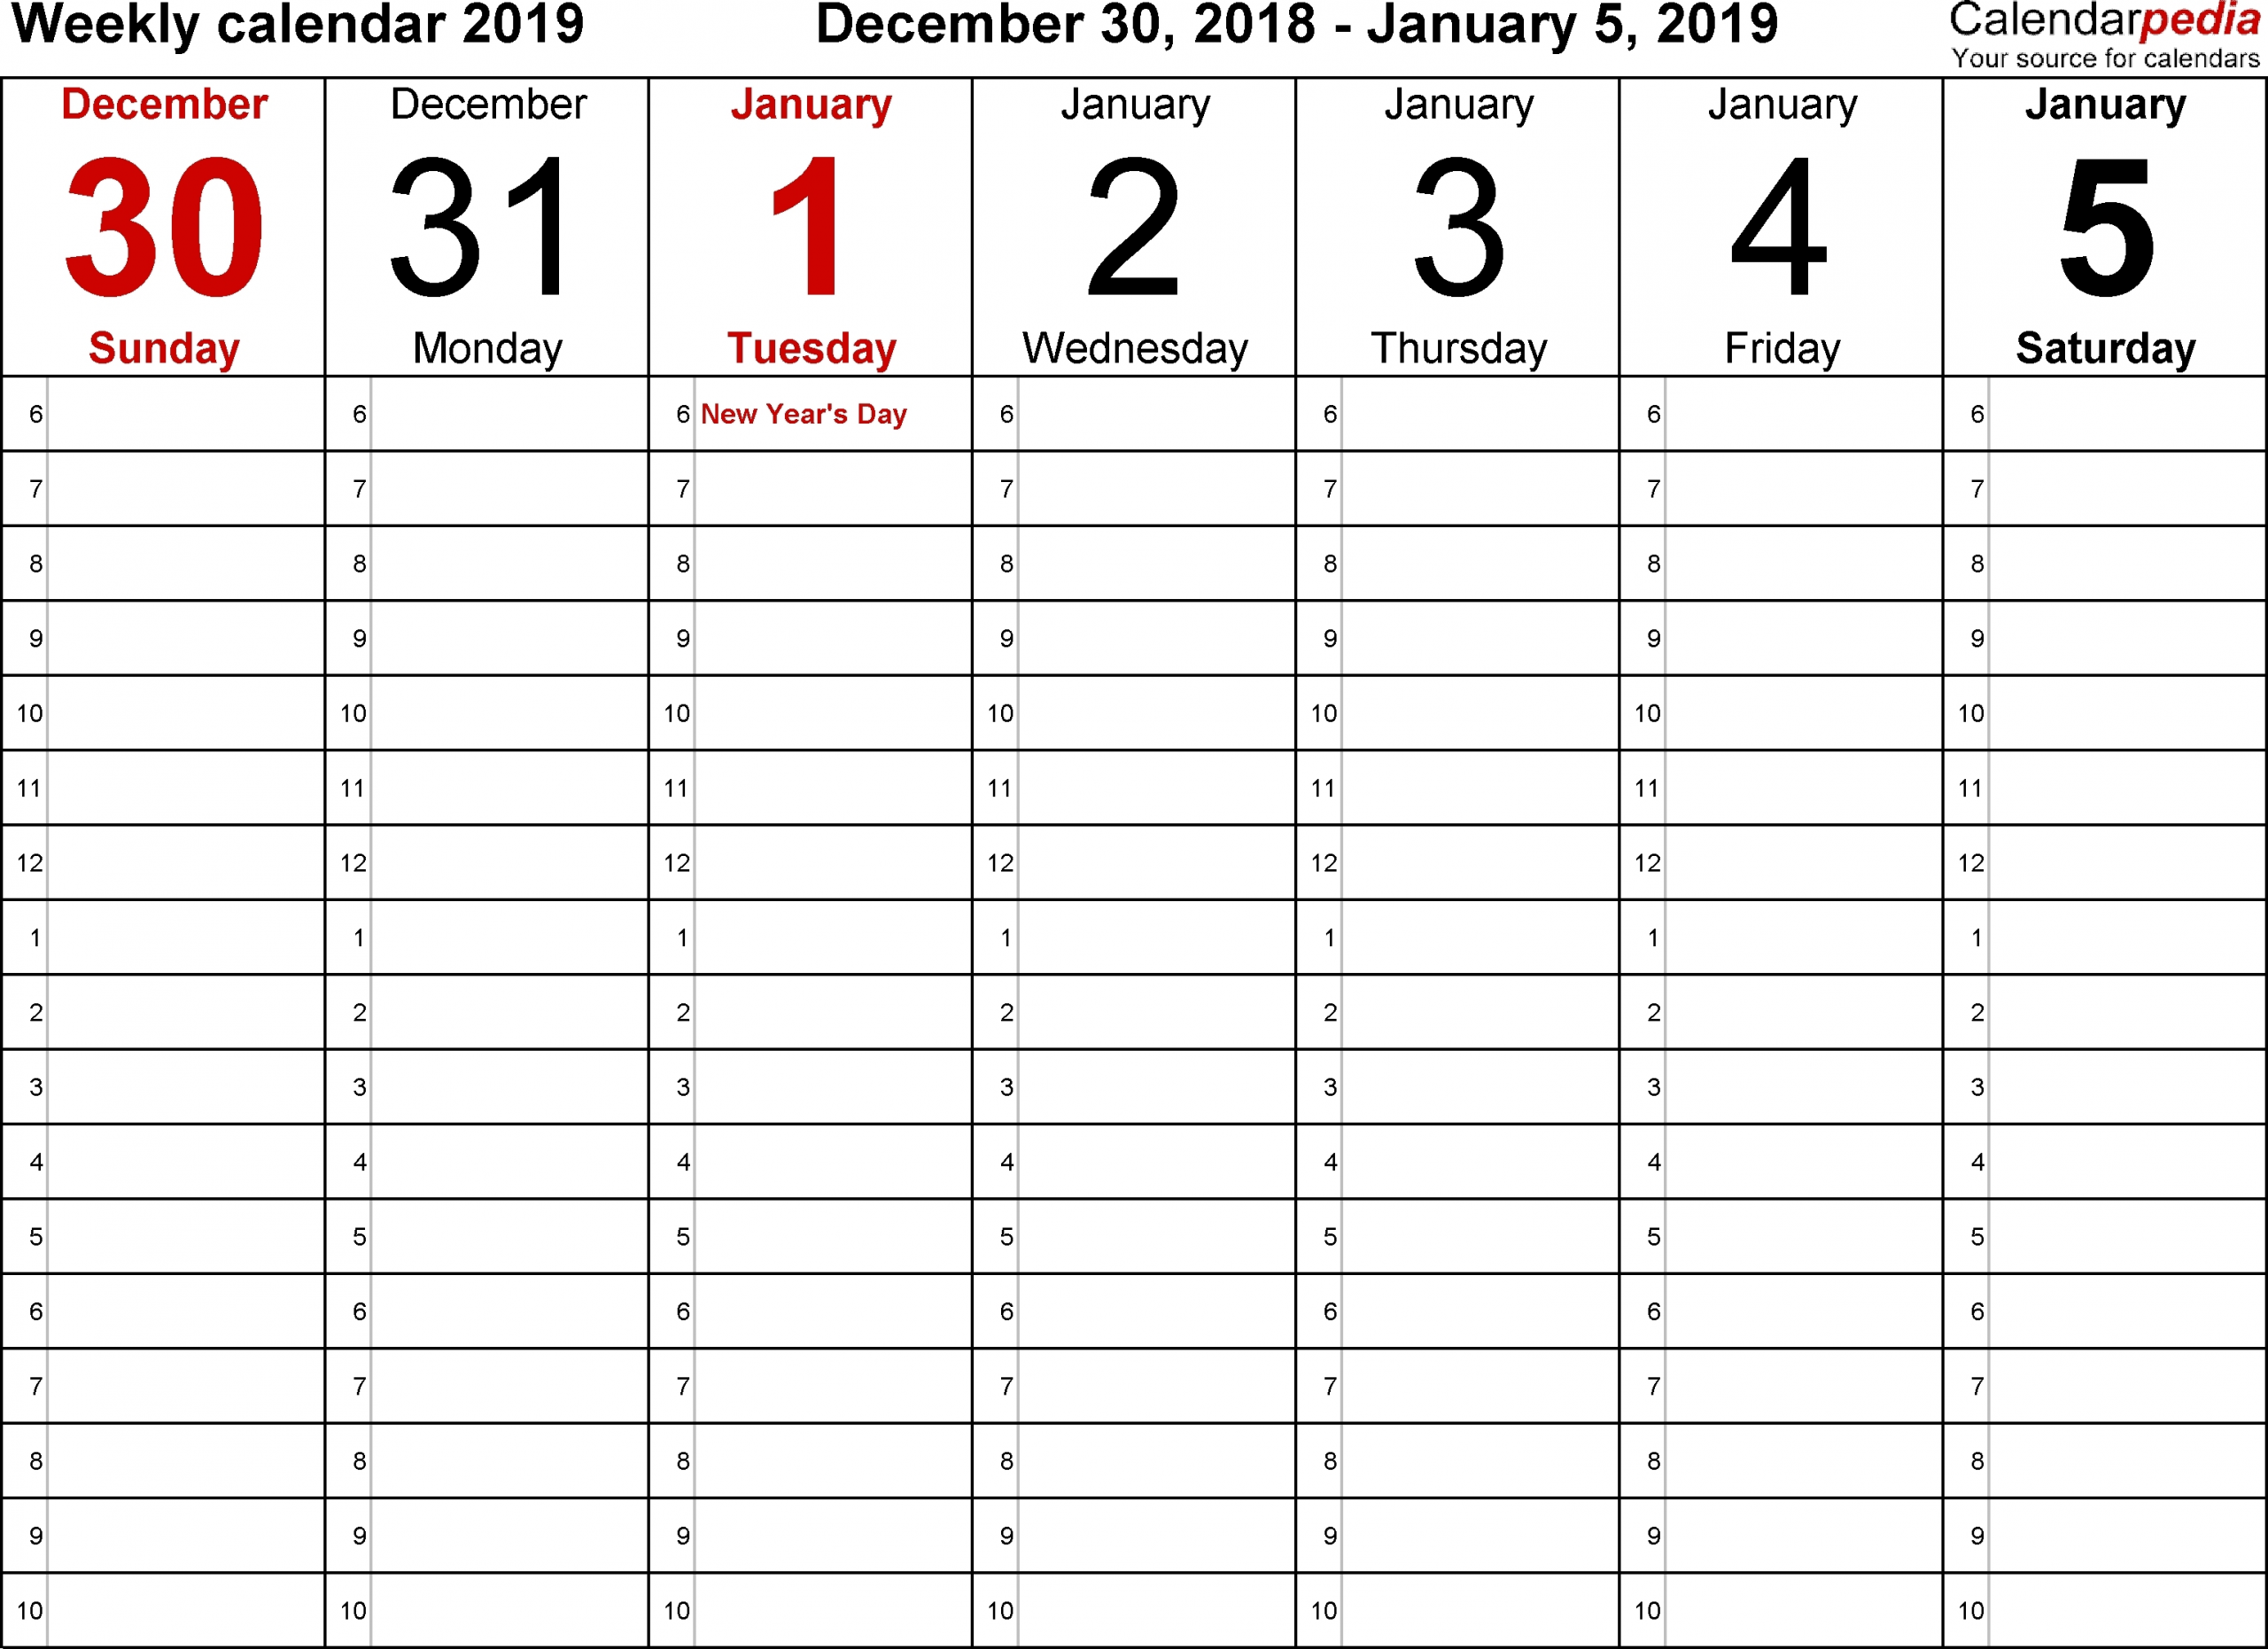 Blank Calendars To Print With Time Slots Calendar